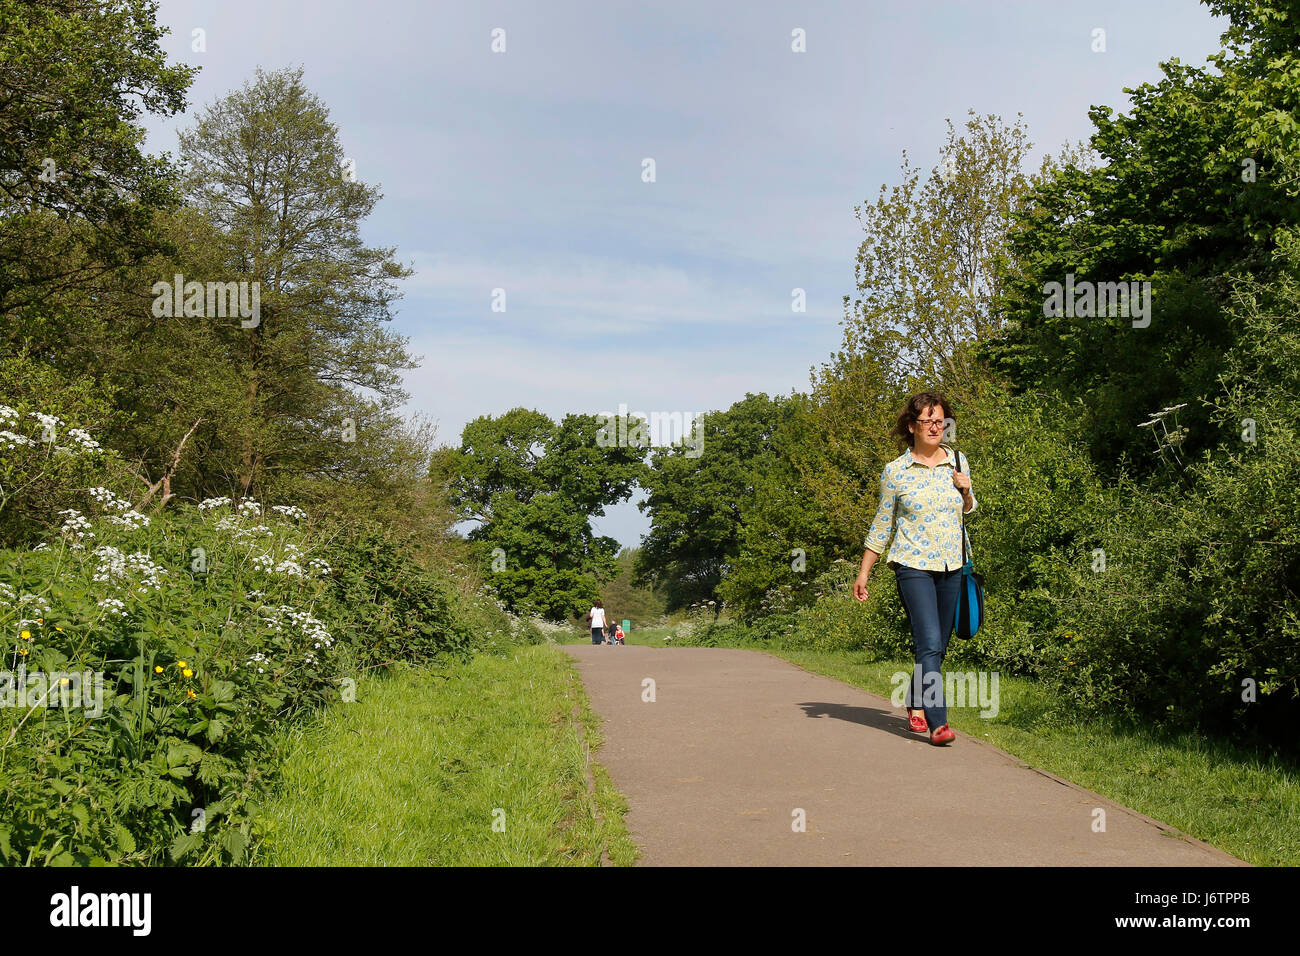 Uttoxeter, Staffordshire. 22nd May 2017. Local residents enjoy the start of a week-long heat-wave in Uttoxeter, - Stock Image